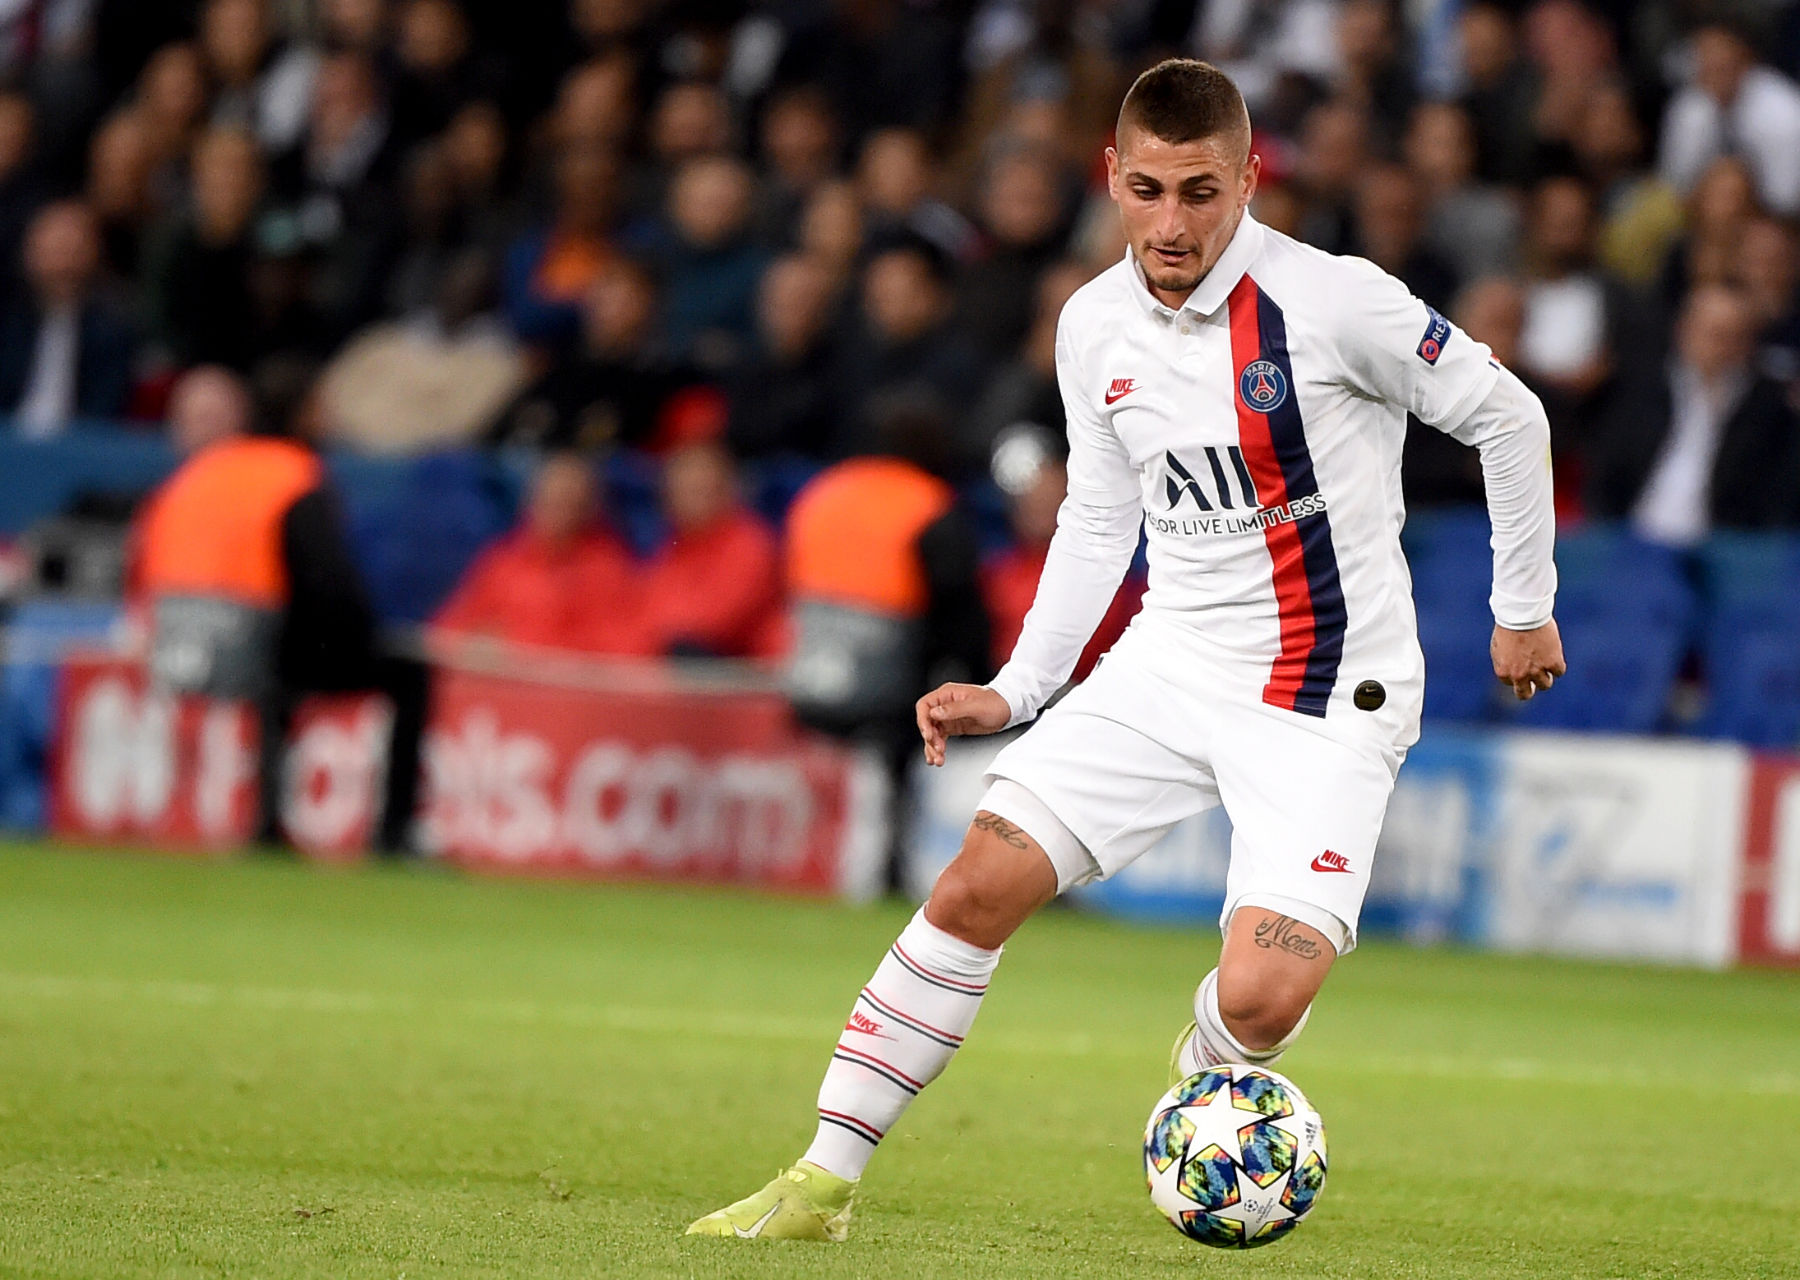 Report: Verratti Will Not Feature Against RB Leipzig in Champions League  Semifinal - PSG Talk